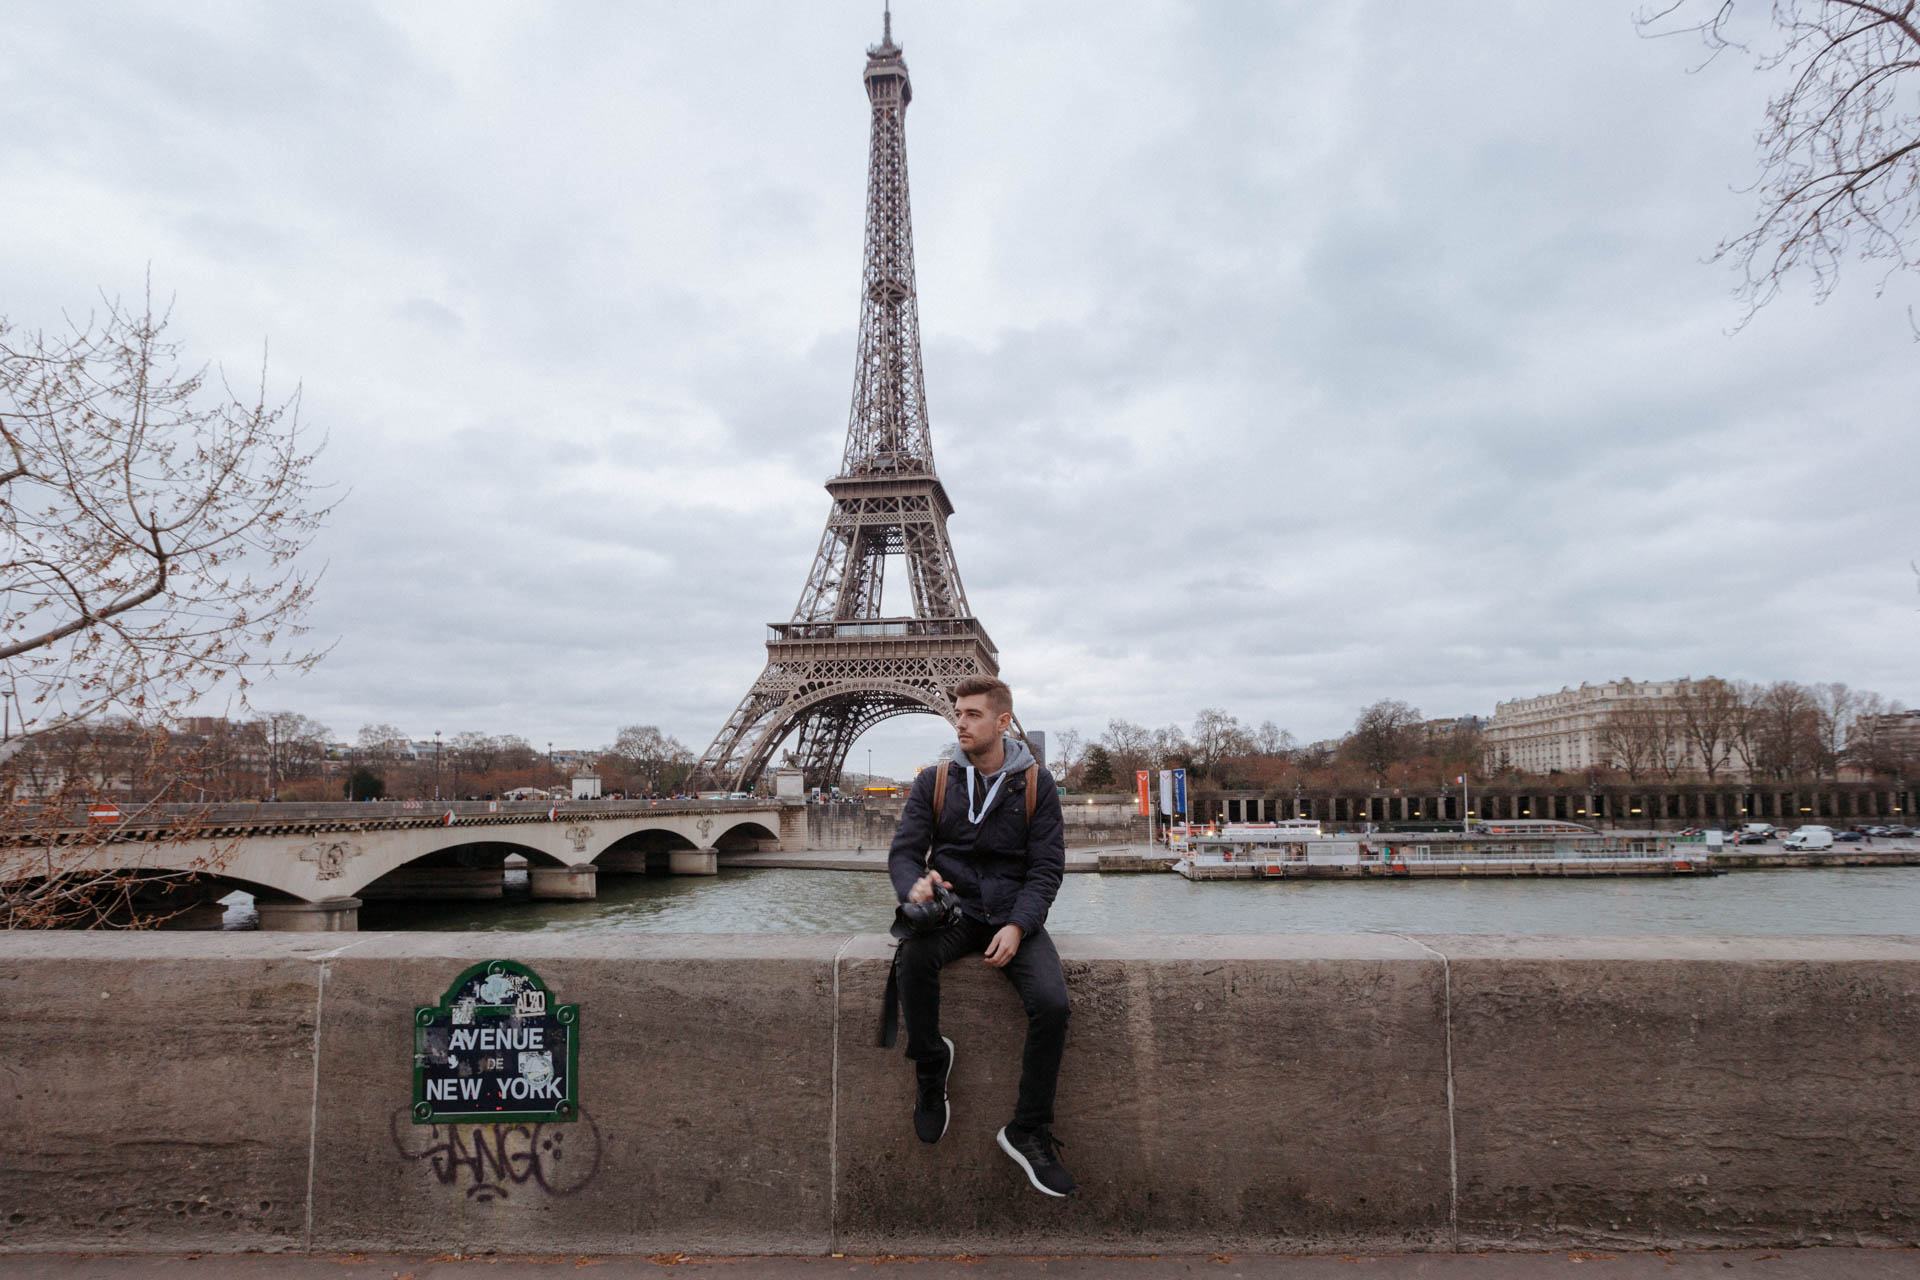 Copy of Eiffel Tower in Paris with Jonathan Grado Sitting in Front of It